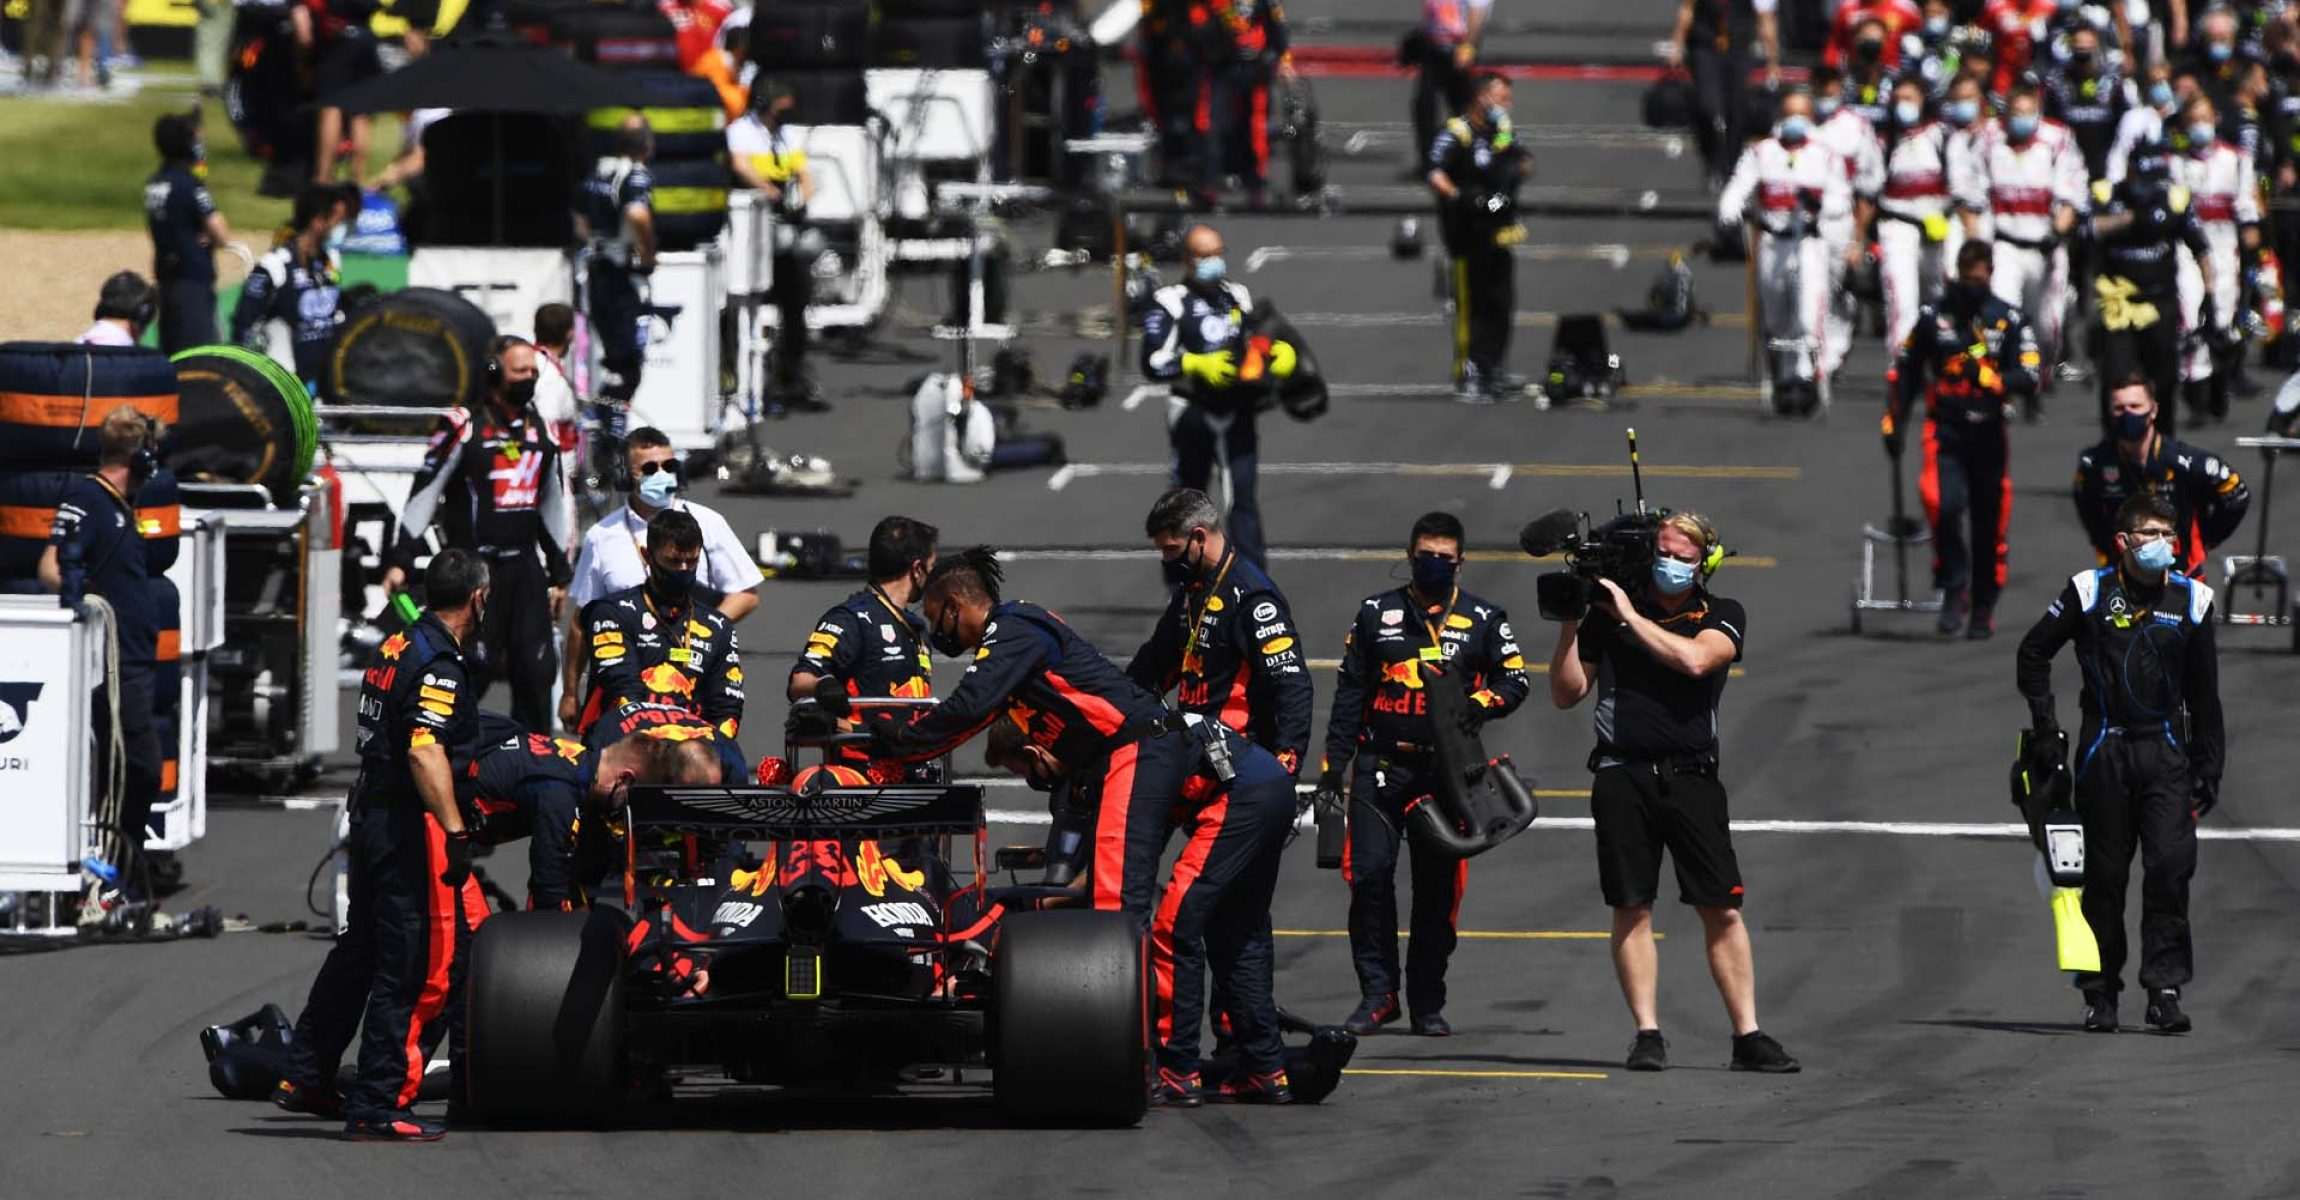 NORTHAMPTON, ENGLAND - AUGUST 02: Red Bull Racing team members prepare on the grid before the F1 Grand Prix of Great Britain at Silverstone on August 02, 2020 in Northampton, England. (Photo by Rudy Carezzevoli/Getty Images)